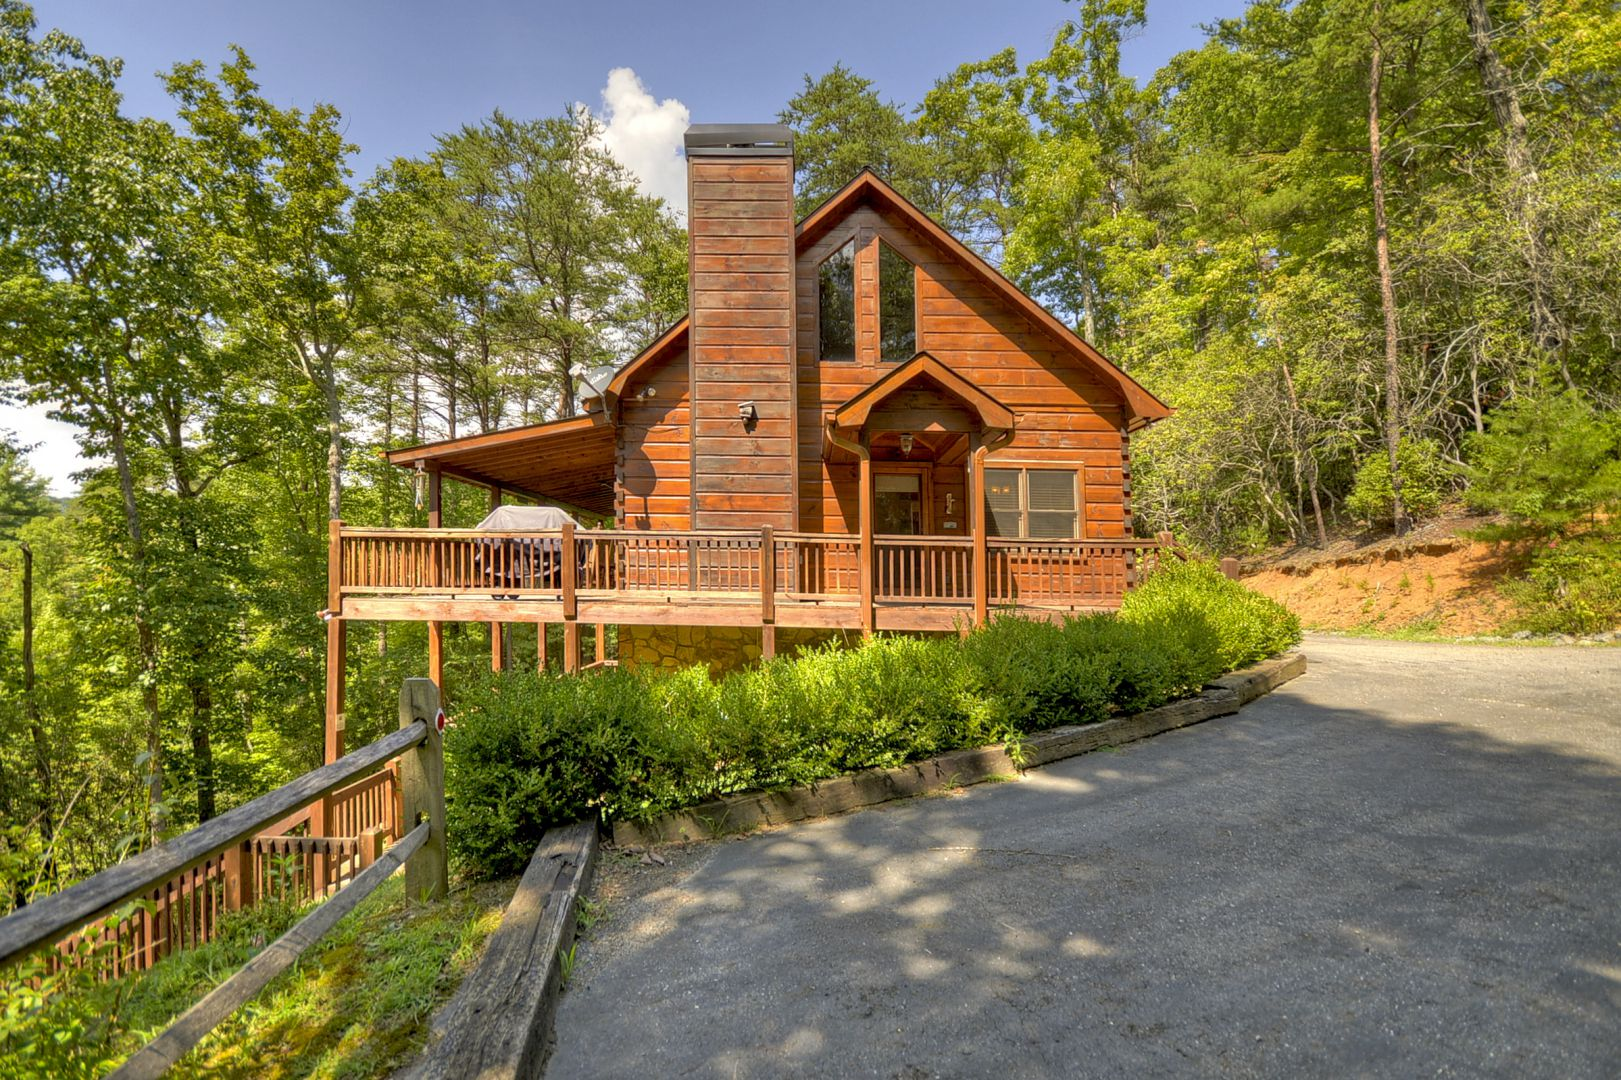 Aska La Vista Rental Cabin Cuddle Up Cabin Rentals